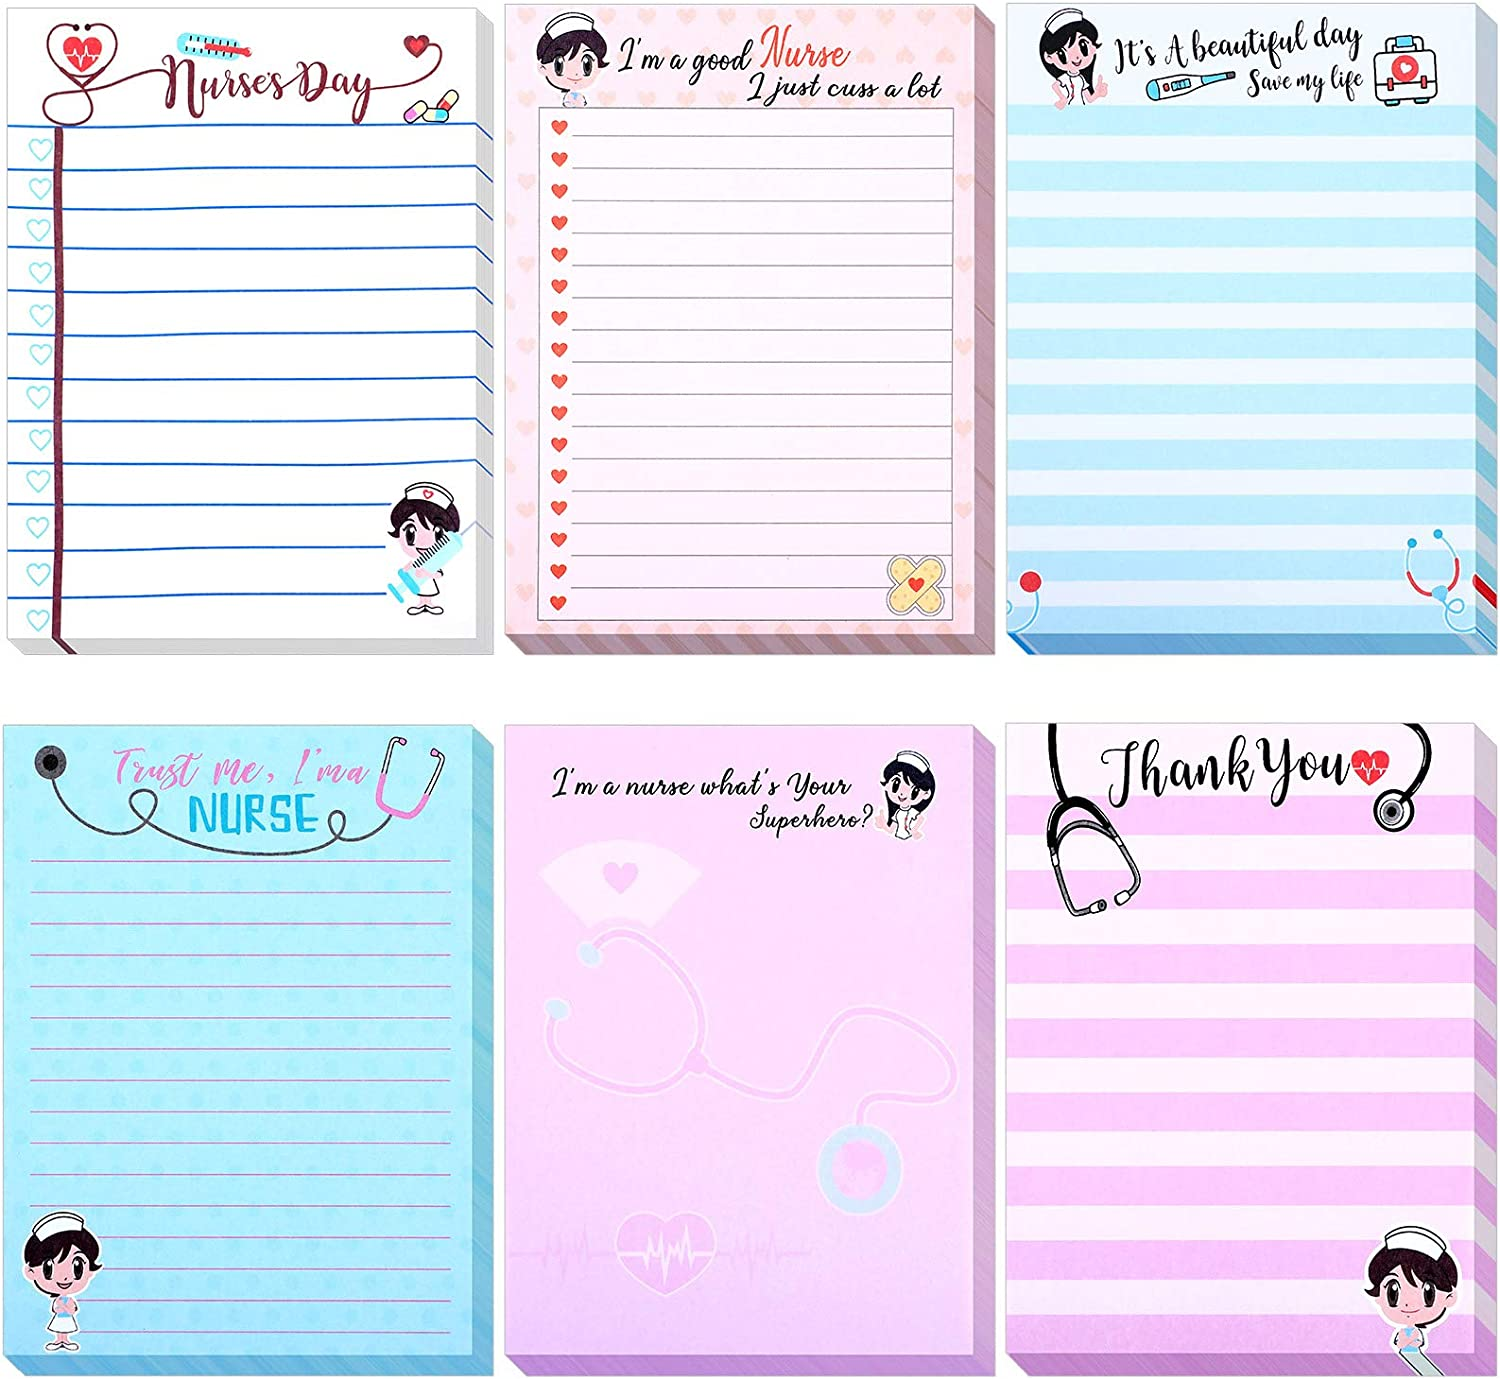 6 Pieces Notepads Nursing Themed Notepads Office Notepads Pocket Notebook Memo Pads Lined and Unlined for Writing Schedules for Nurse Physician Assistant Graduation Season, 50 Sheets Per Note Pad